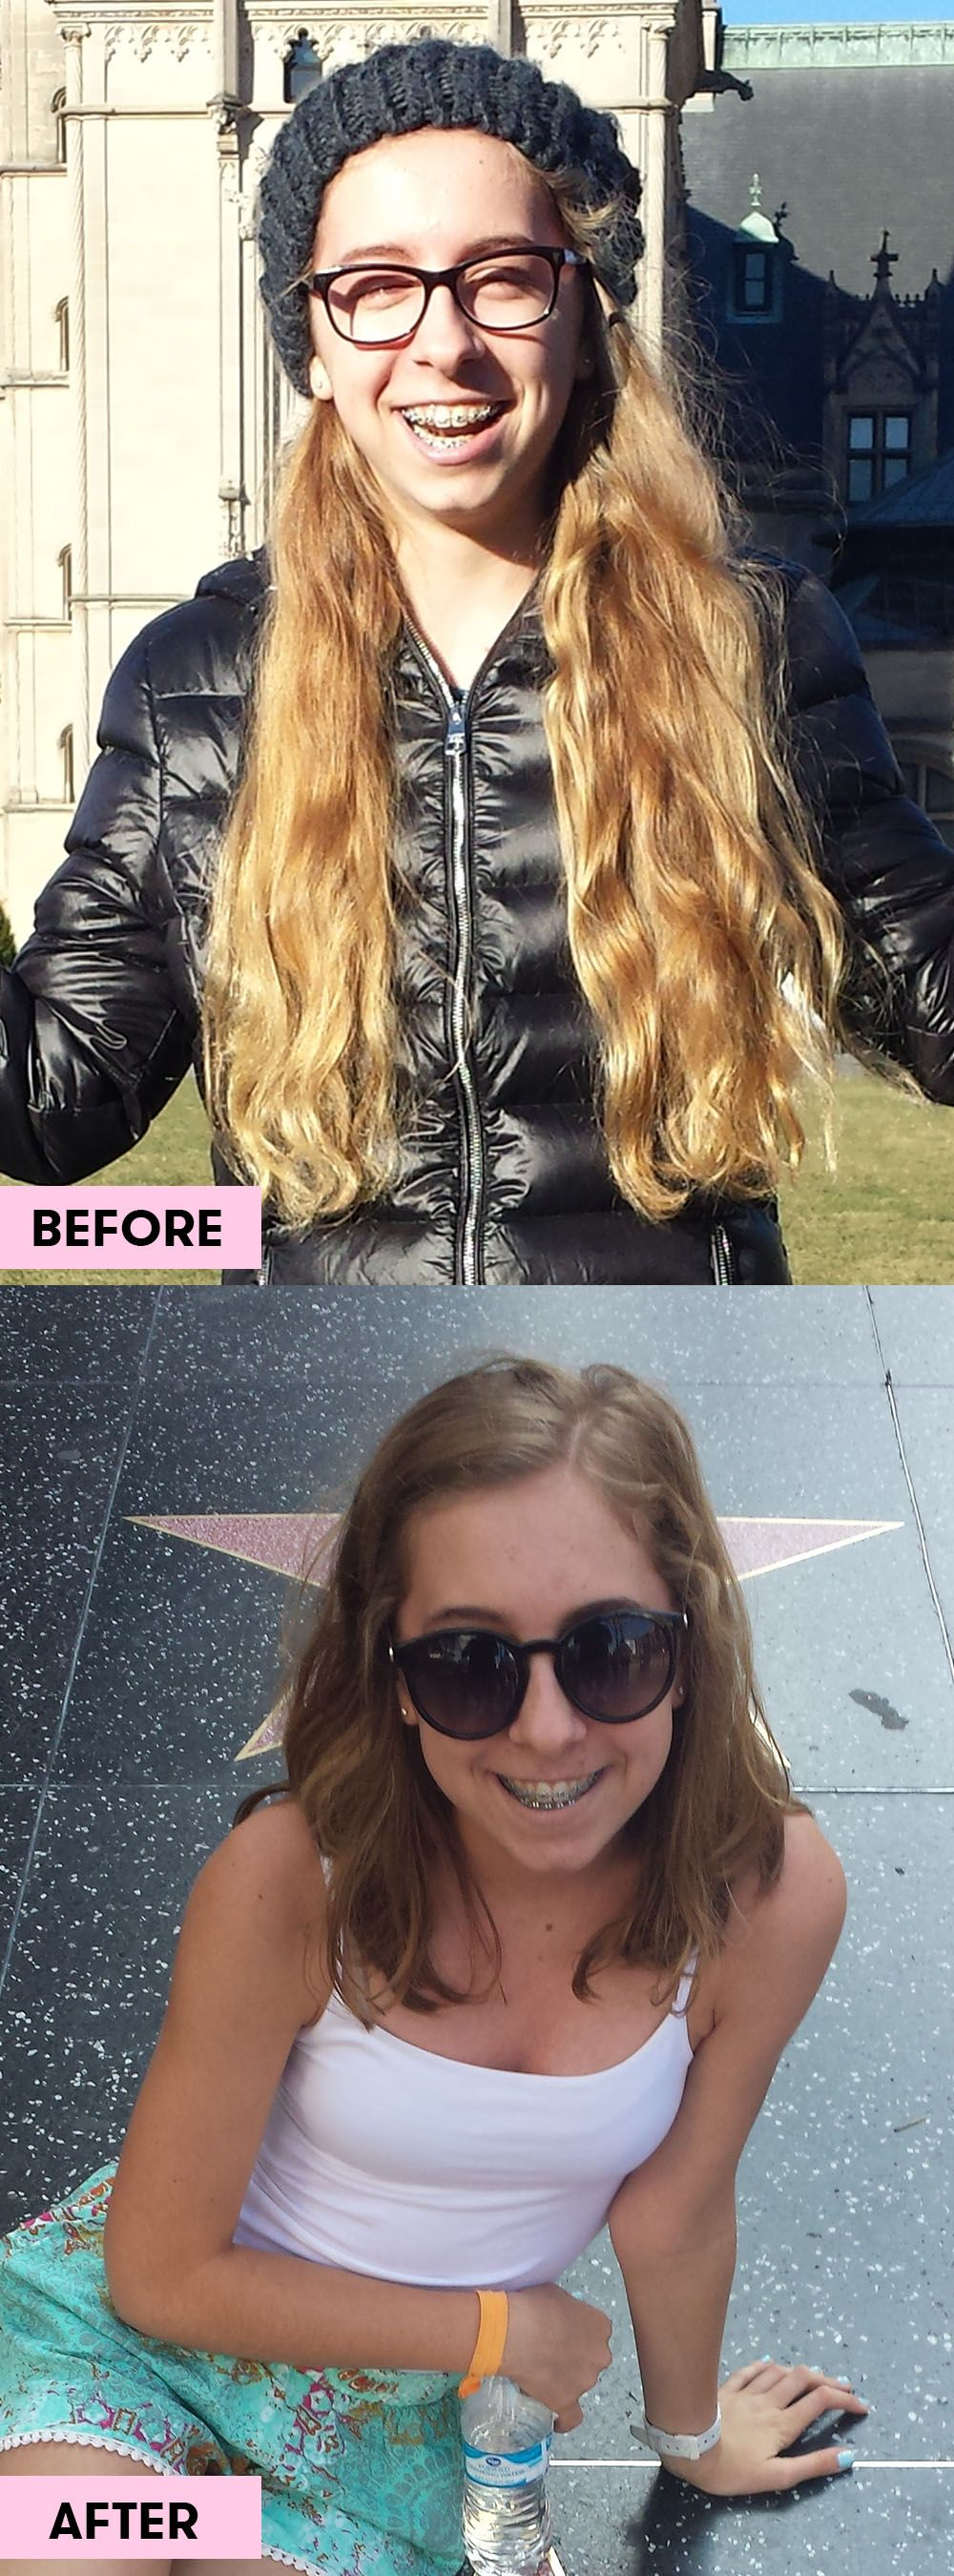 10 Girls Before And After Cutting Their Hair